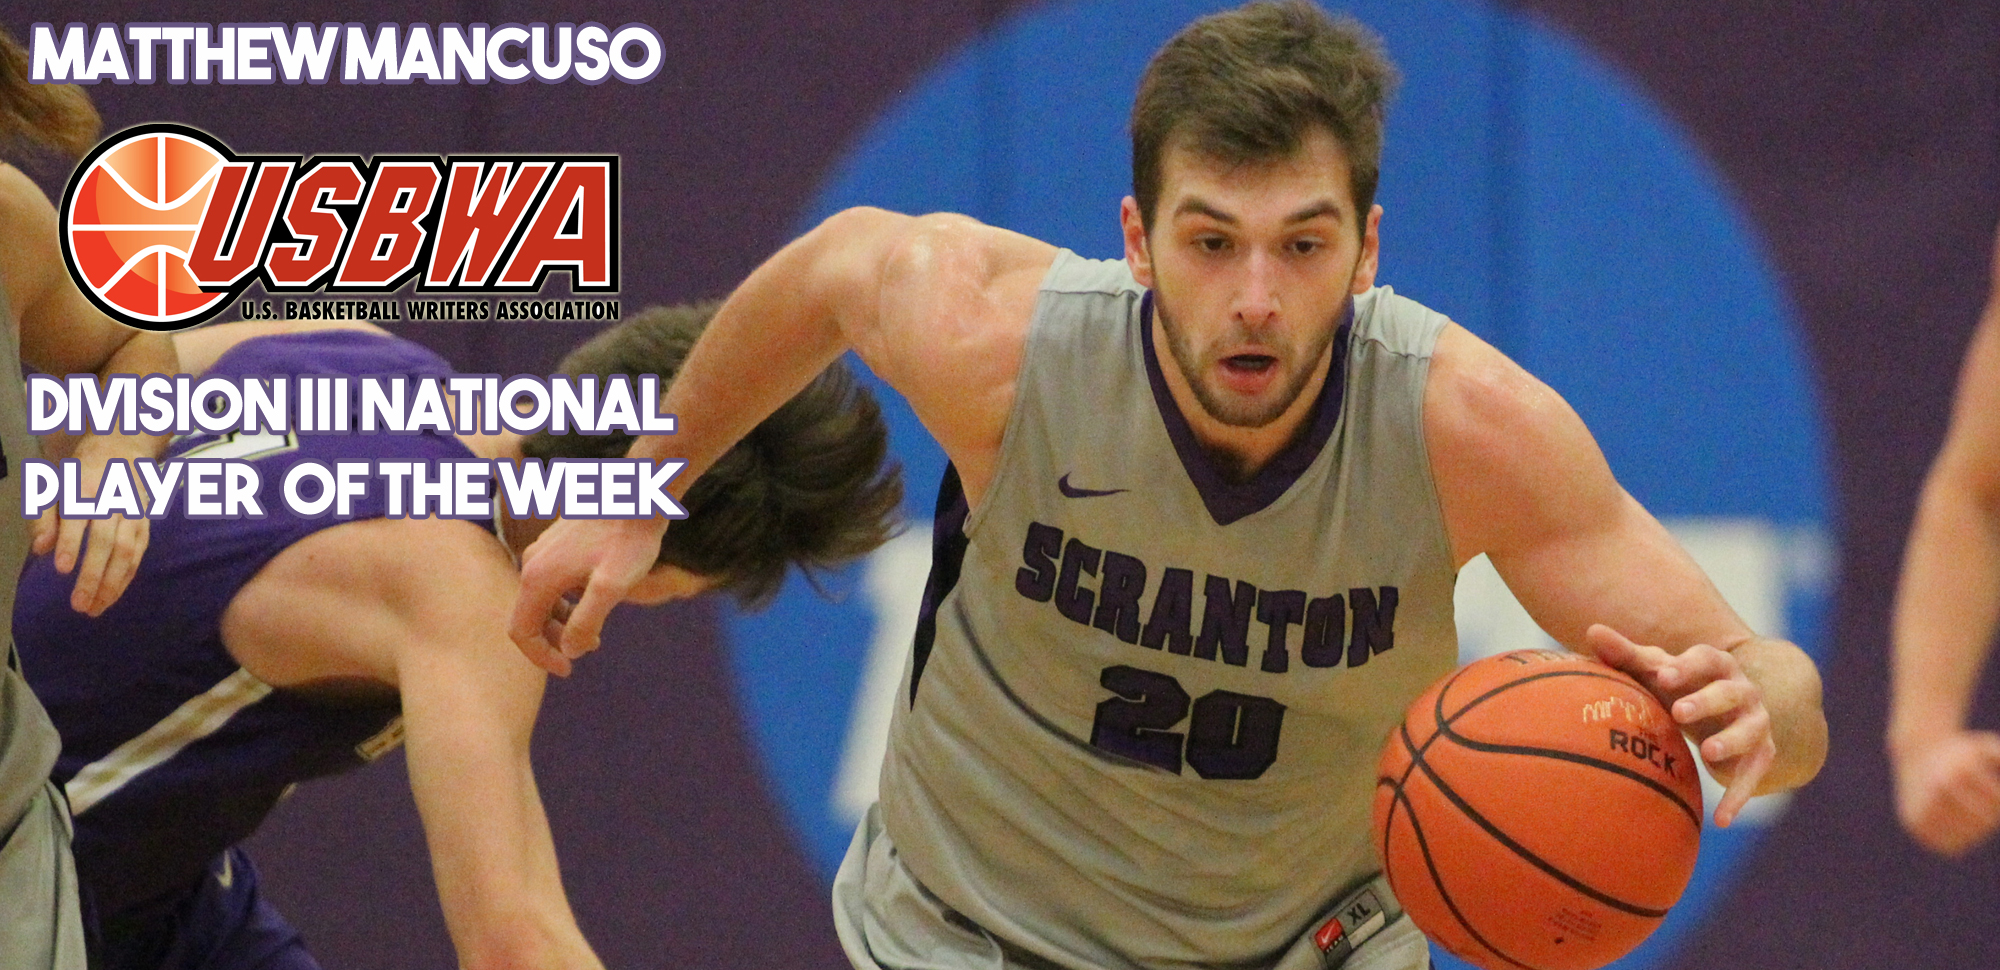 Senior Matthew Mancuso became the first player in program history to be named the USBWA Division III National Player of the Week on Tuesday.